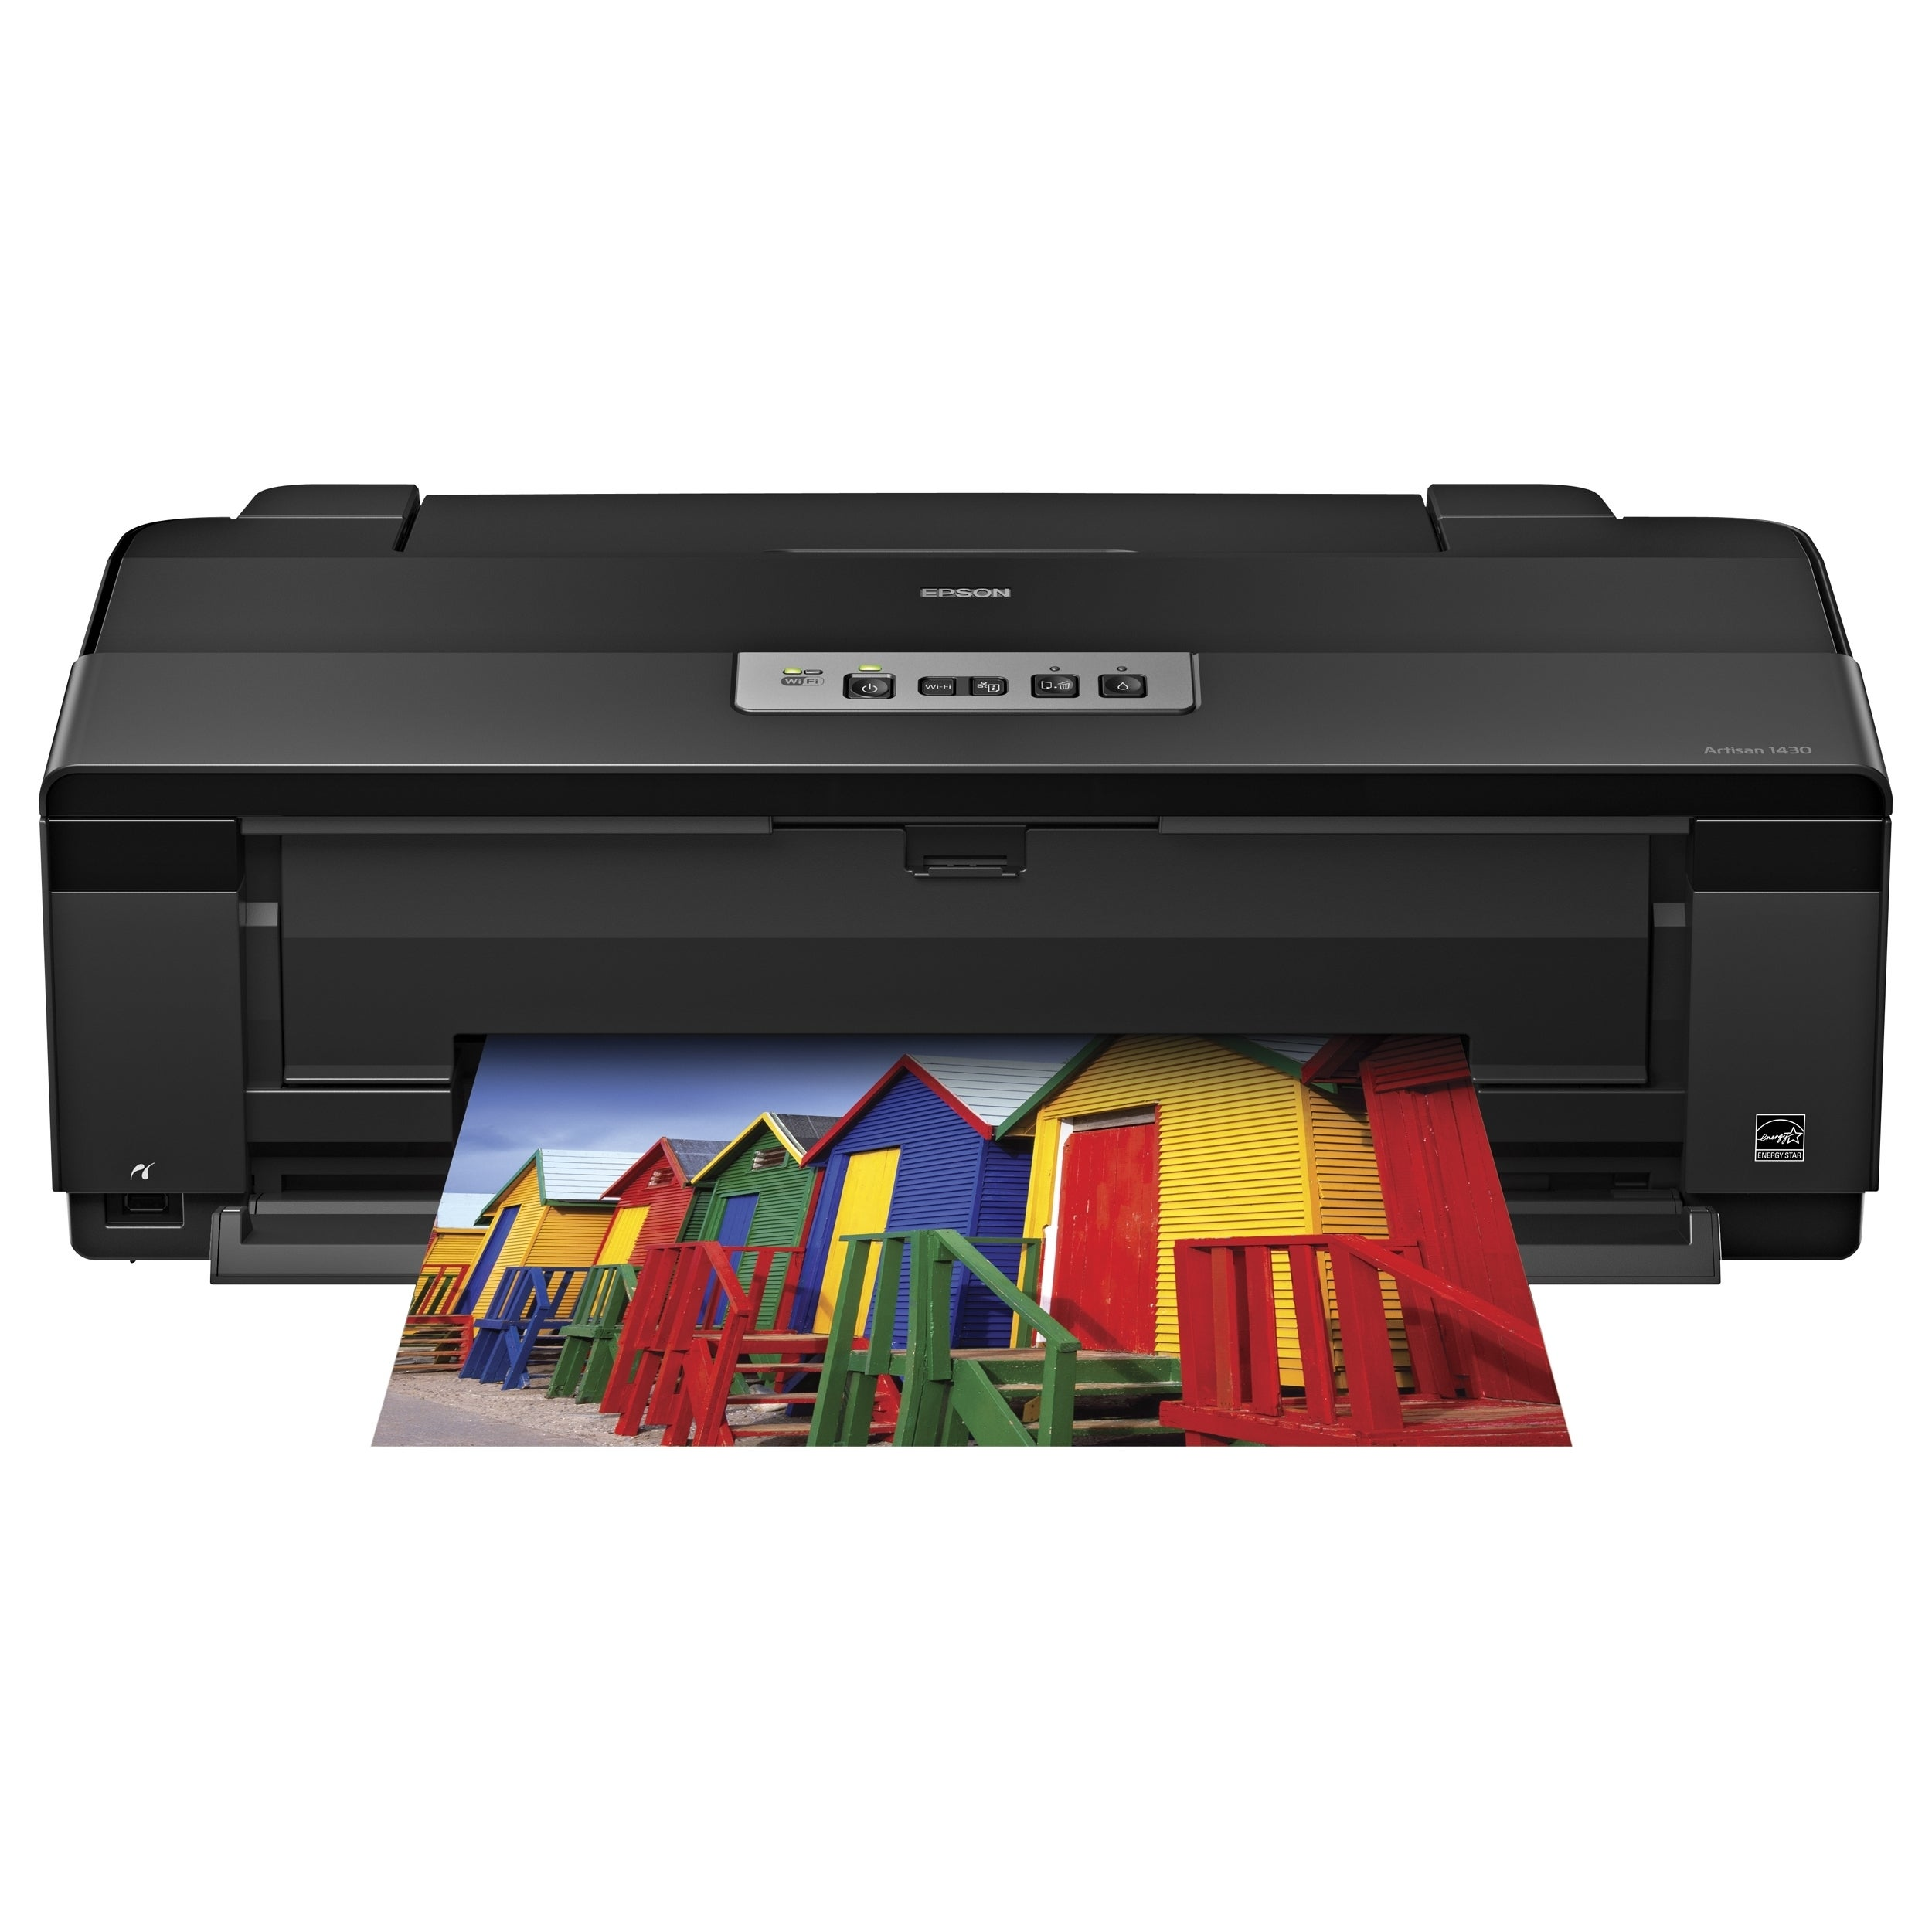 Epson Artisan 1430 Inkjet Printer - Color - 5760 x 1440 d...